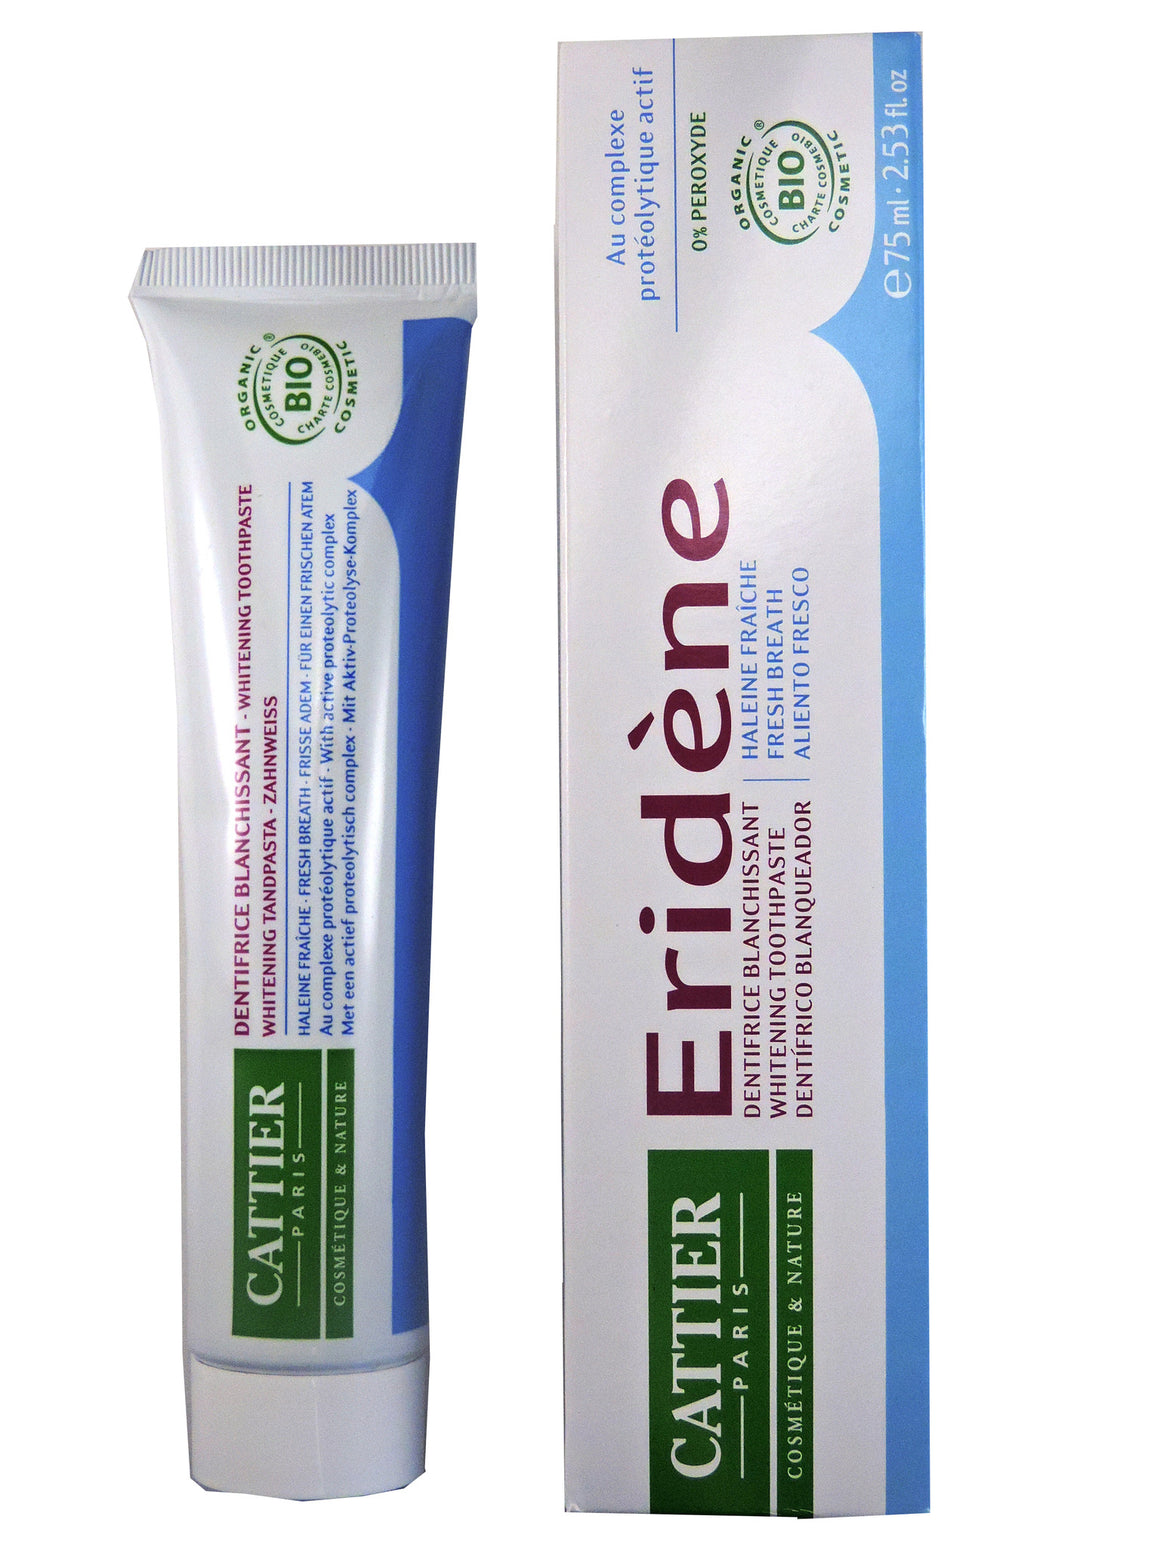 Eridene is Denblan replacement and is sold at le frenchskincare.com